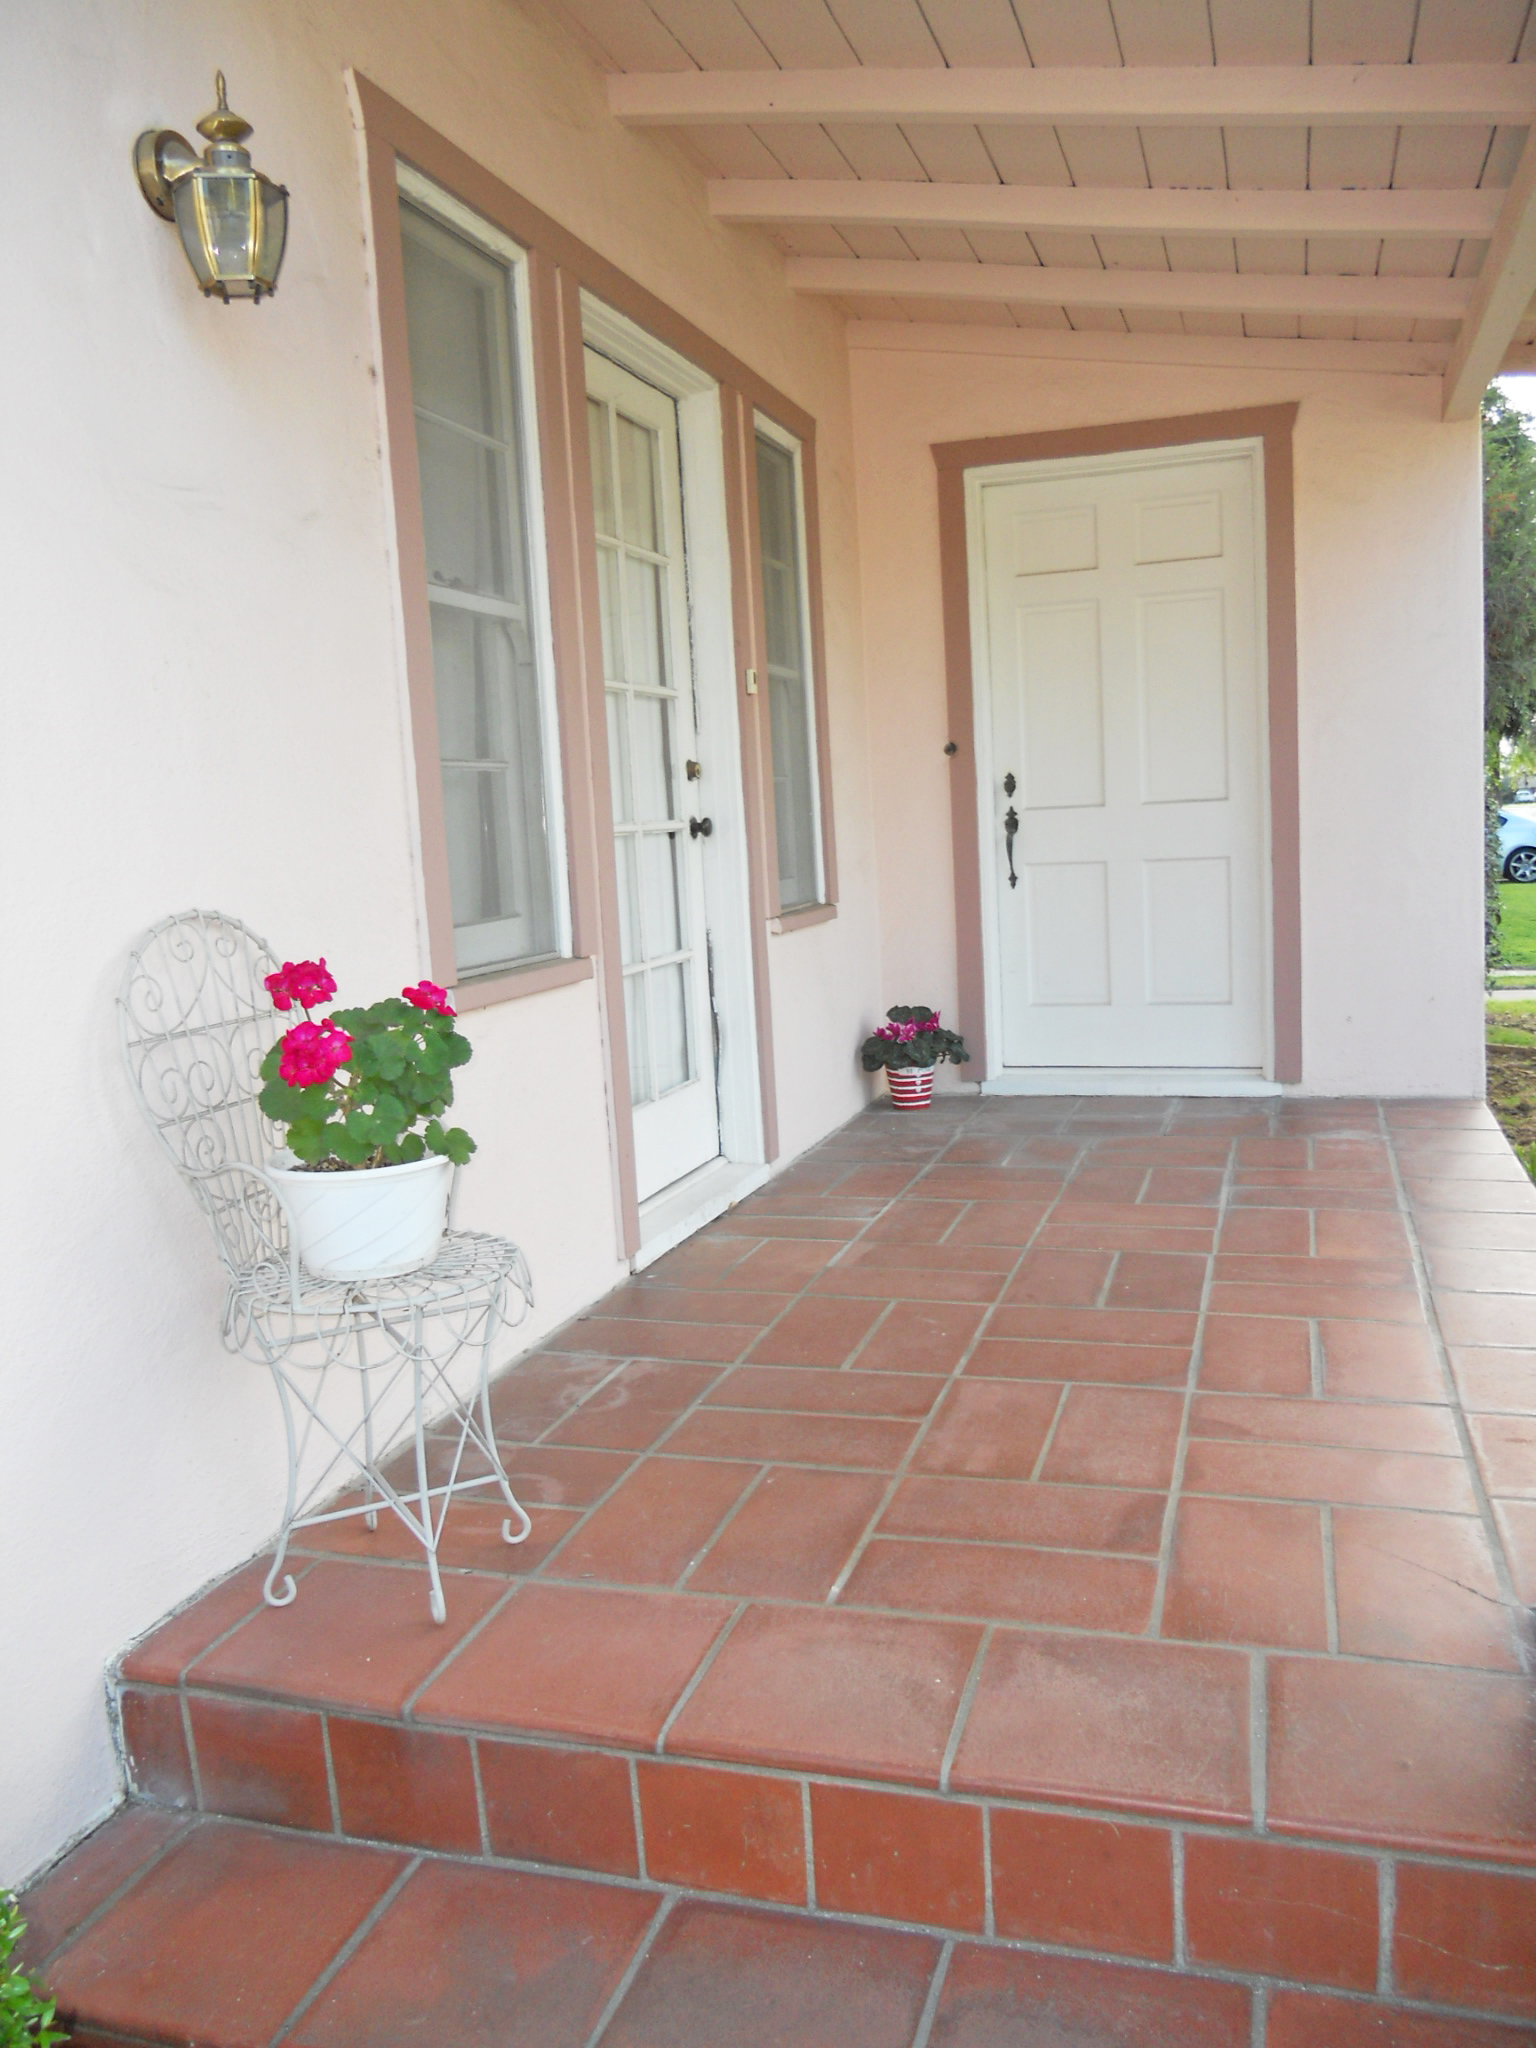 Lovely covered front porch